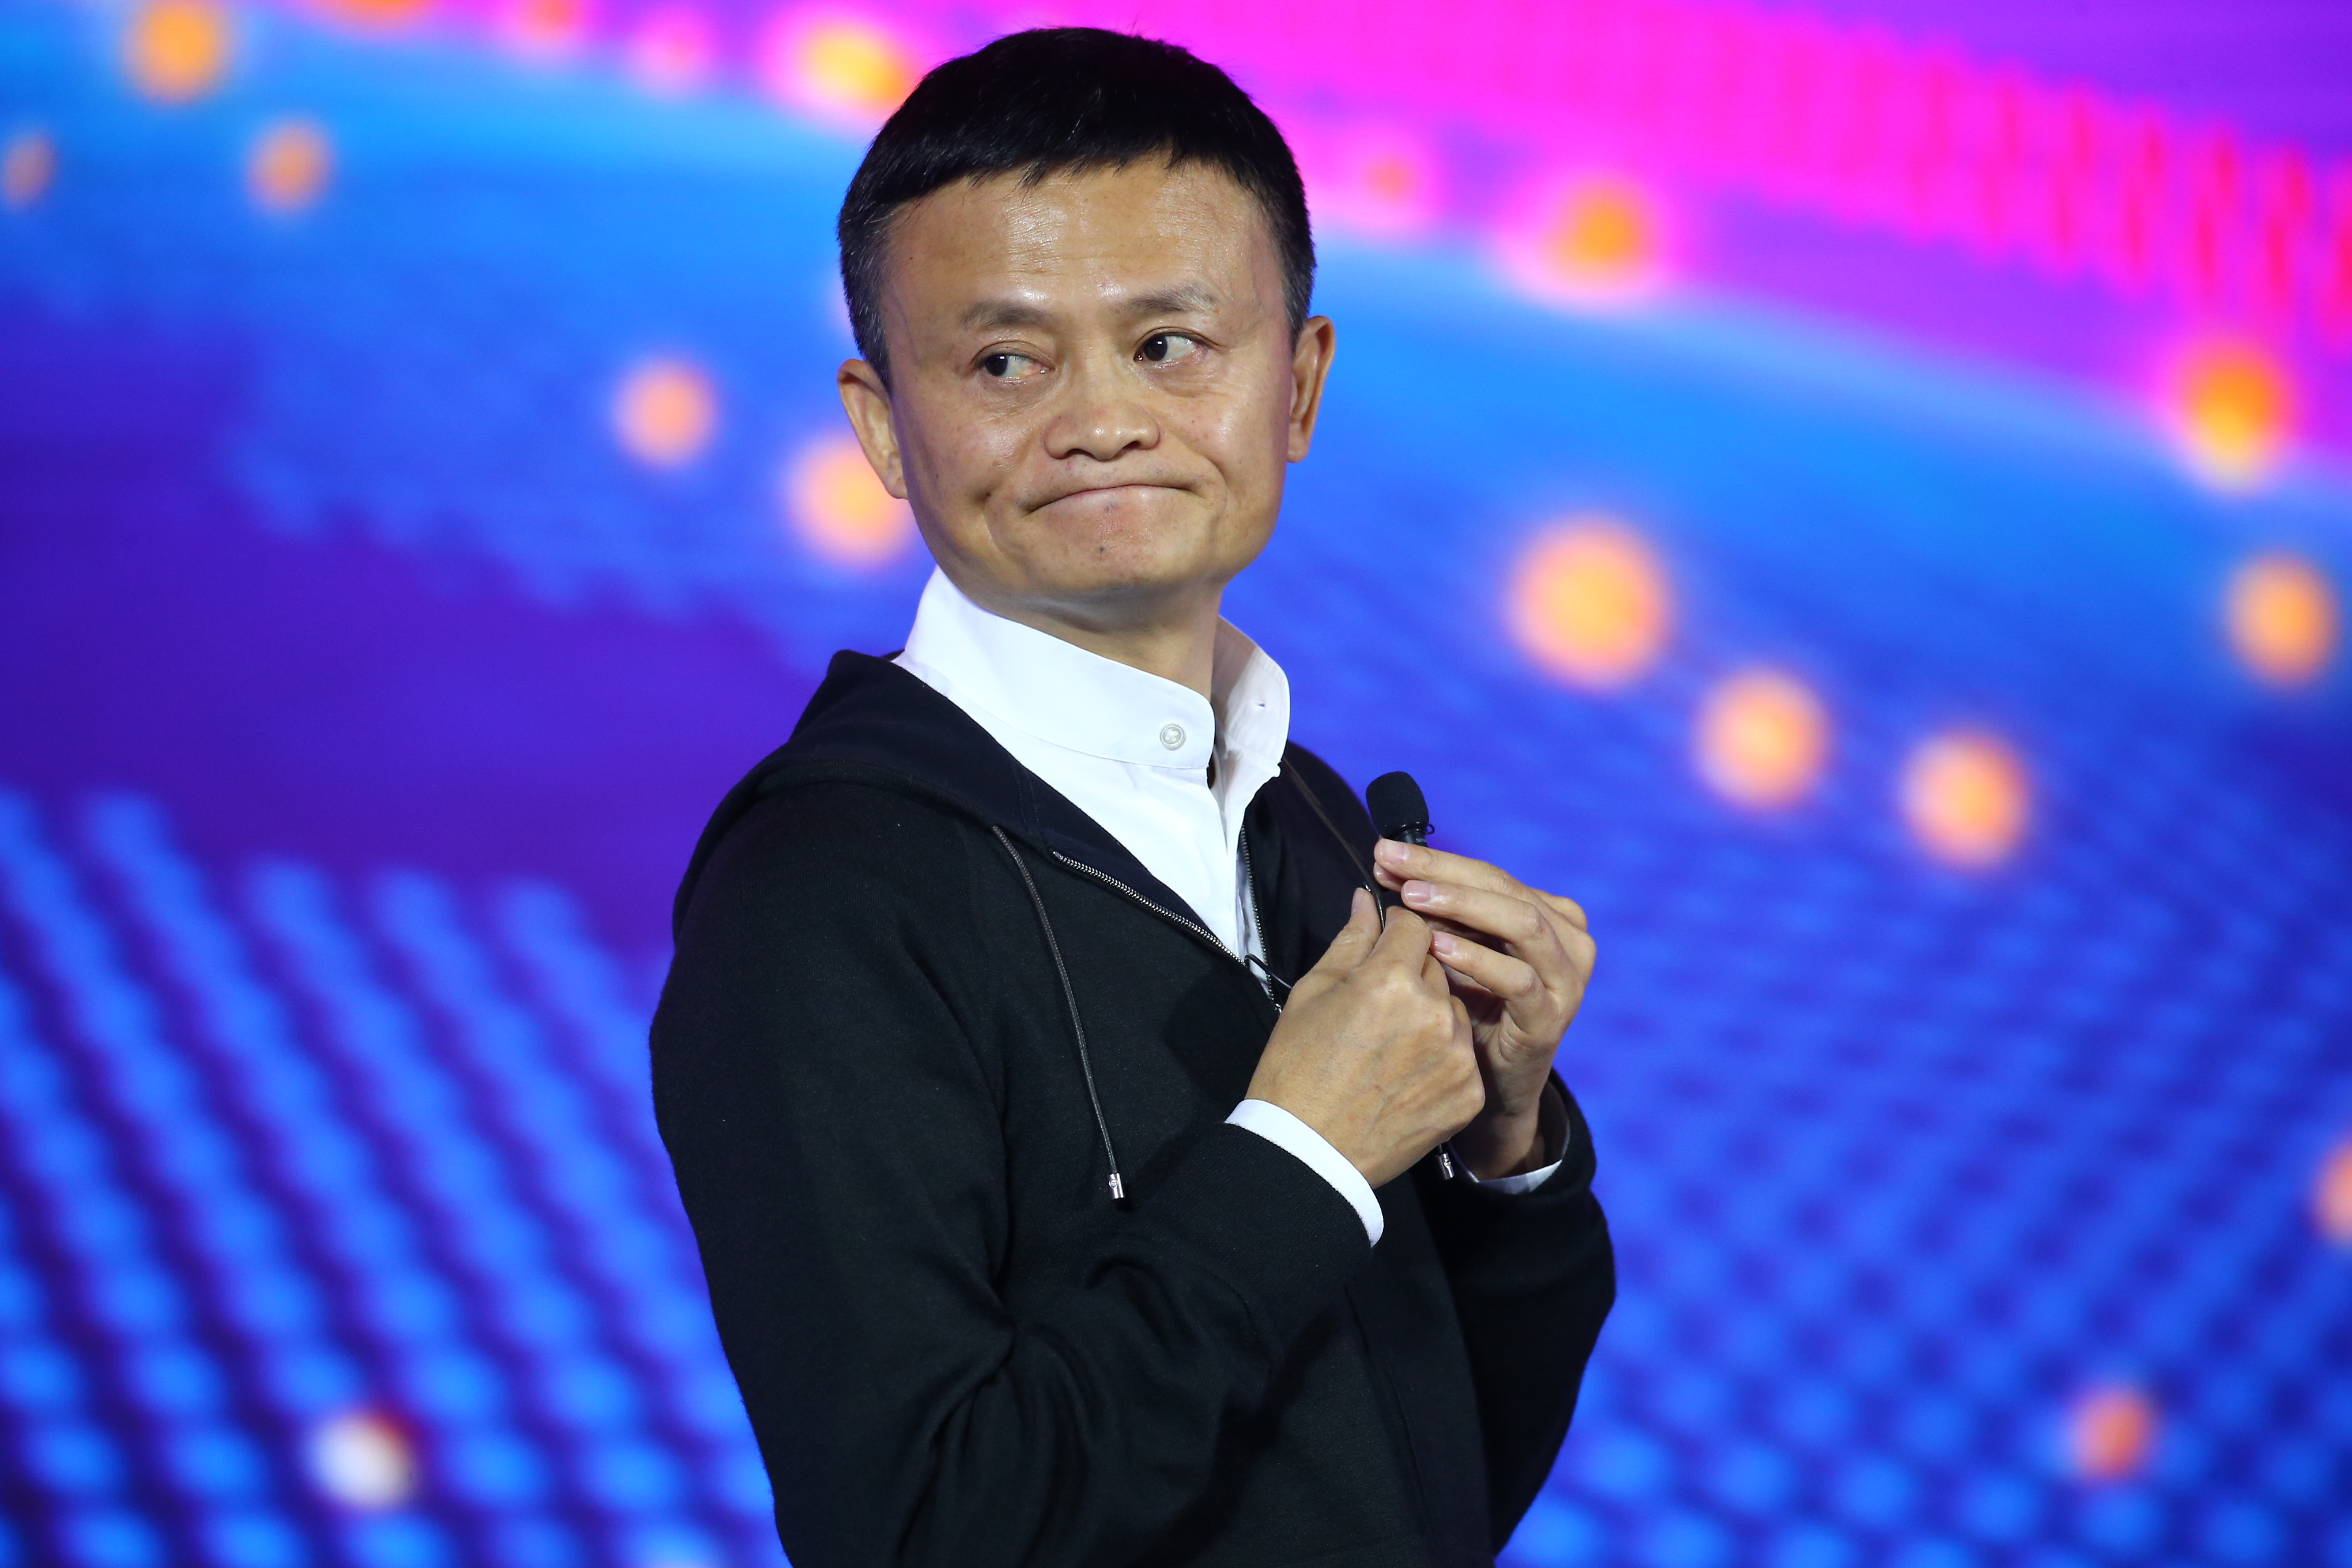 Jack Ma Makes Speech Before The End Of 11.11 Global Shopping Featival In Shenzhen